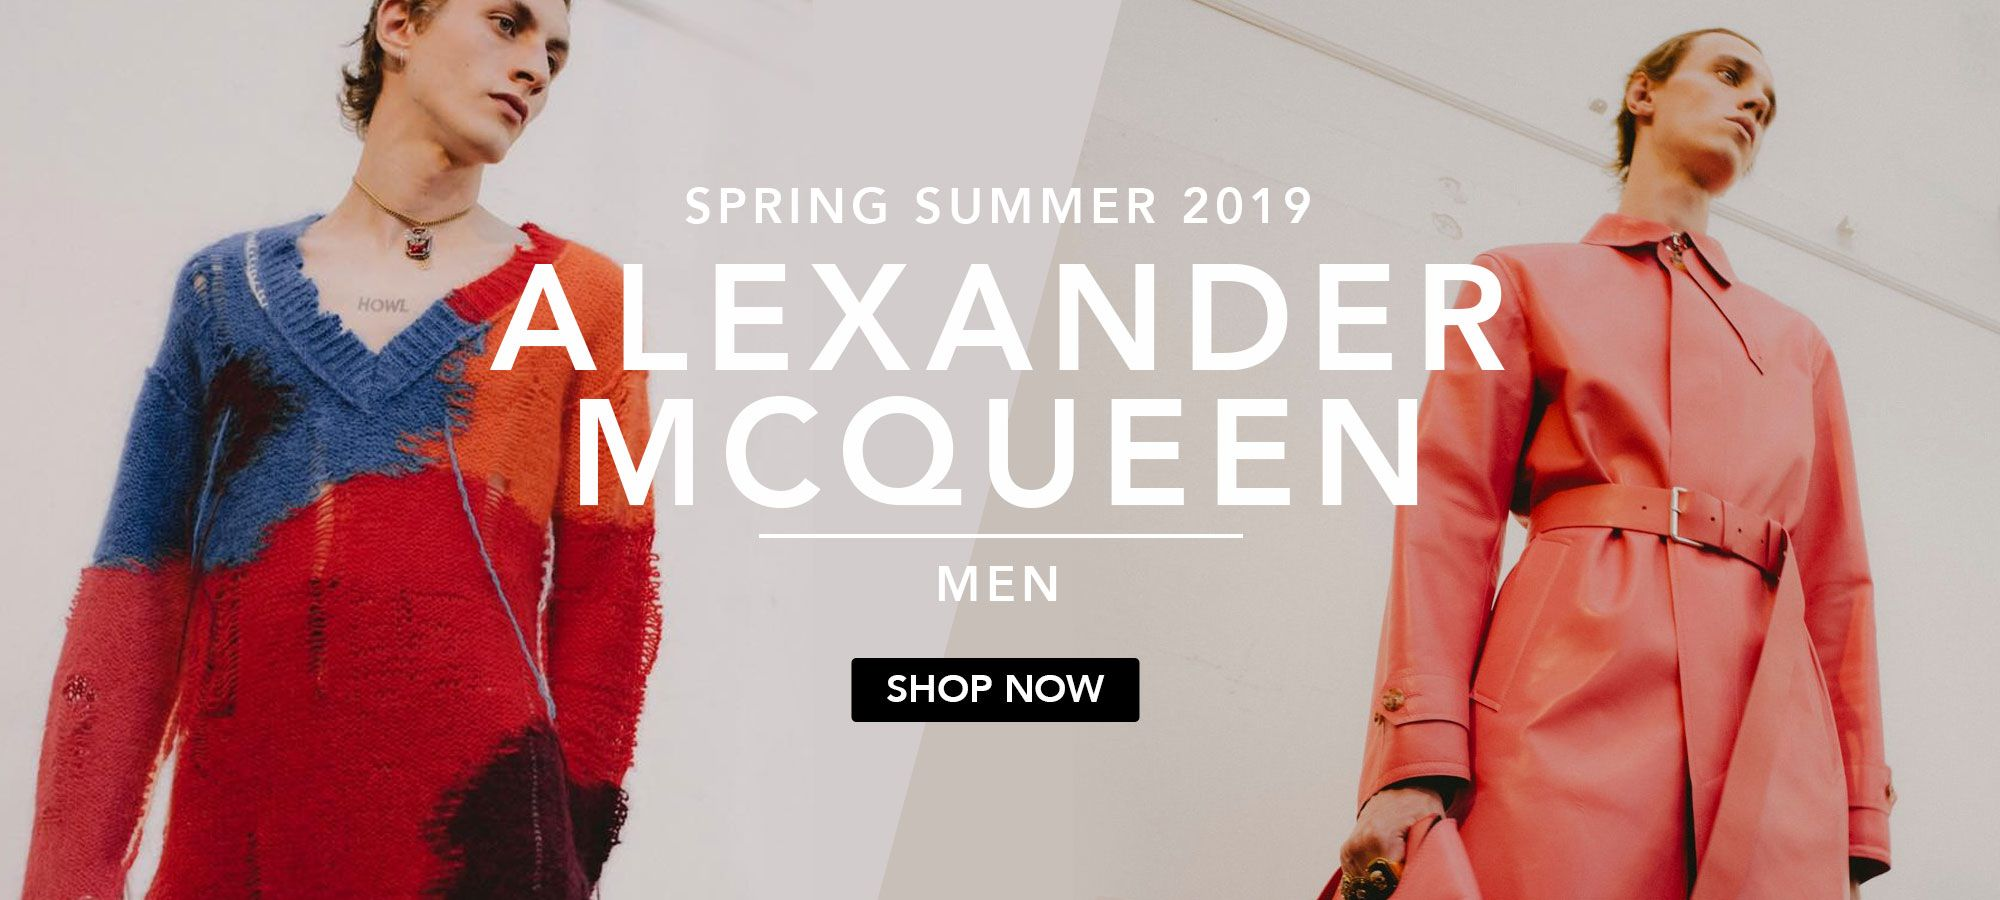 Alexander McQueen Men Spring Summer 2019 by italist